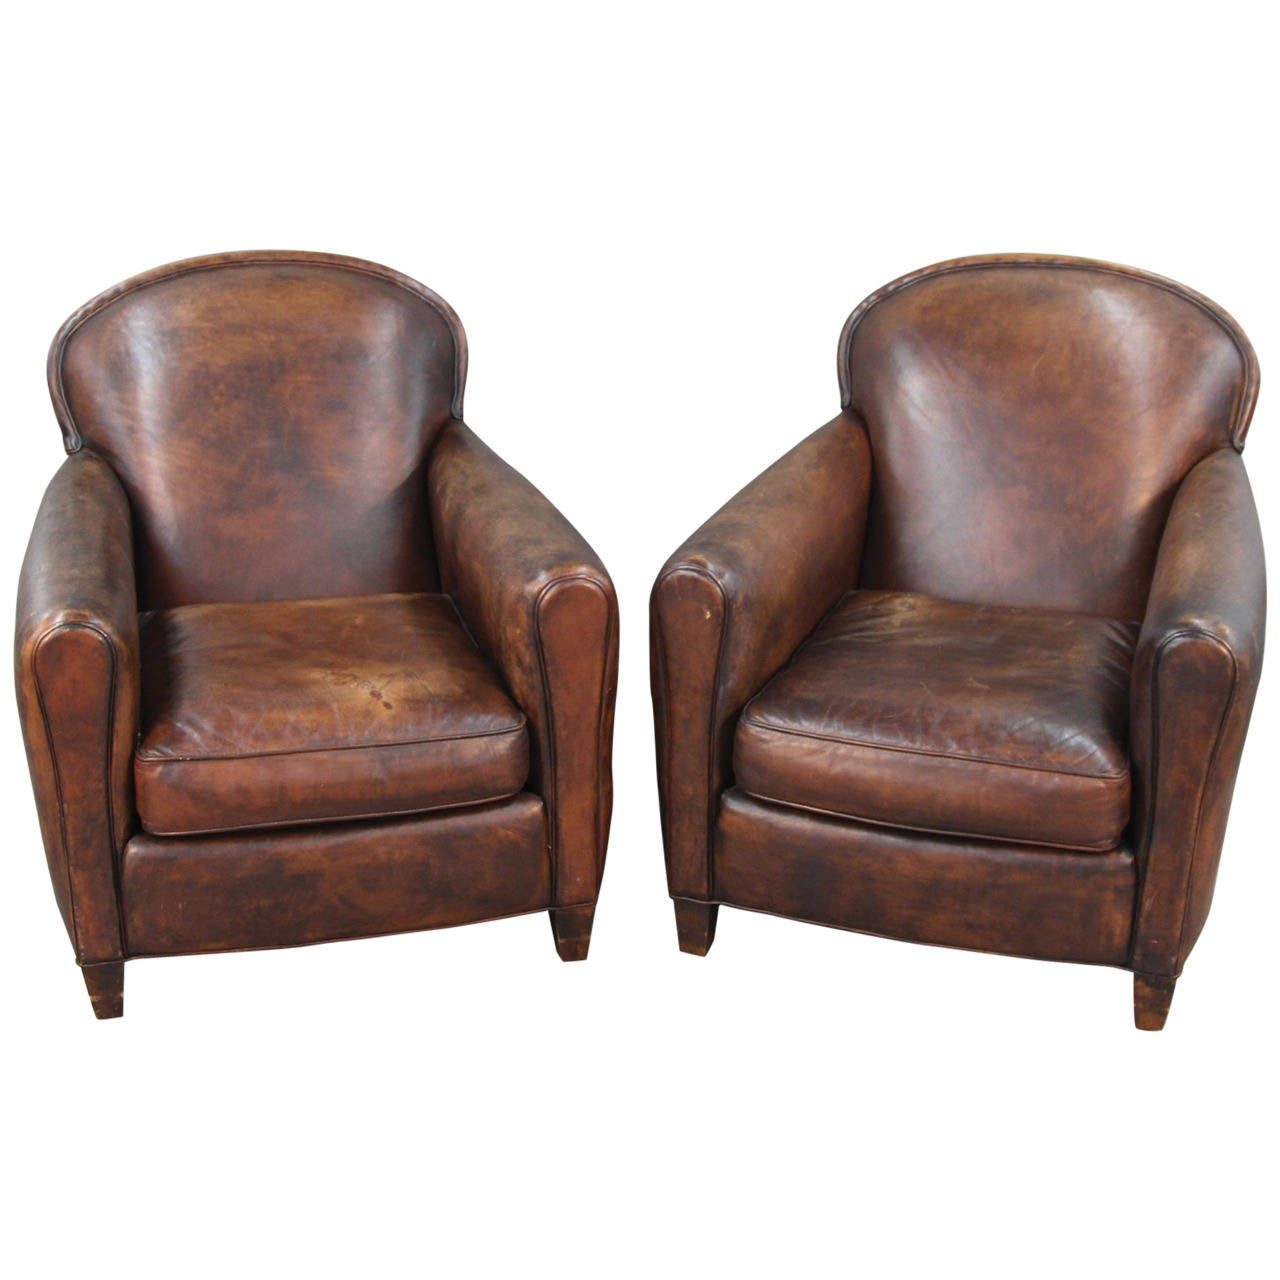 Pair Of Art Deco Style Leather Club Chairs For Sale